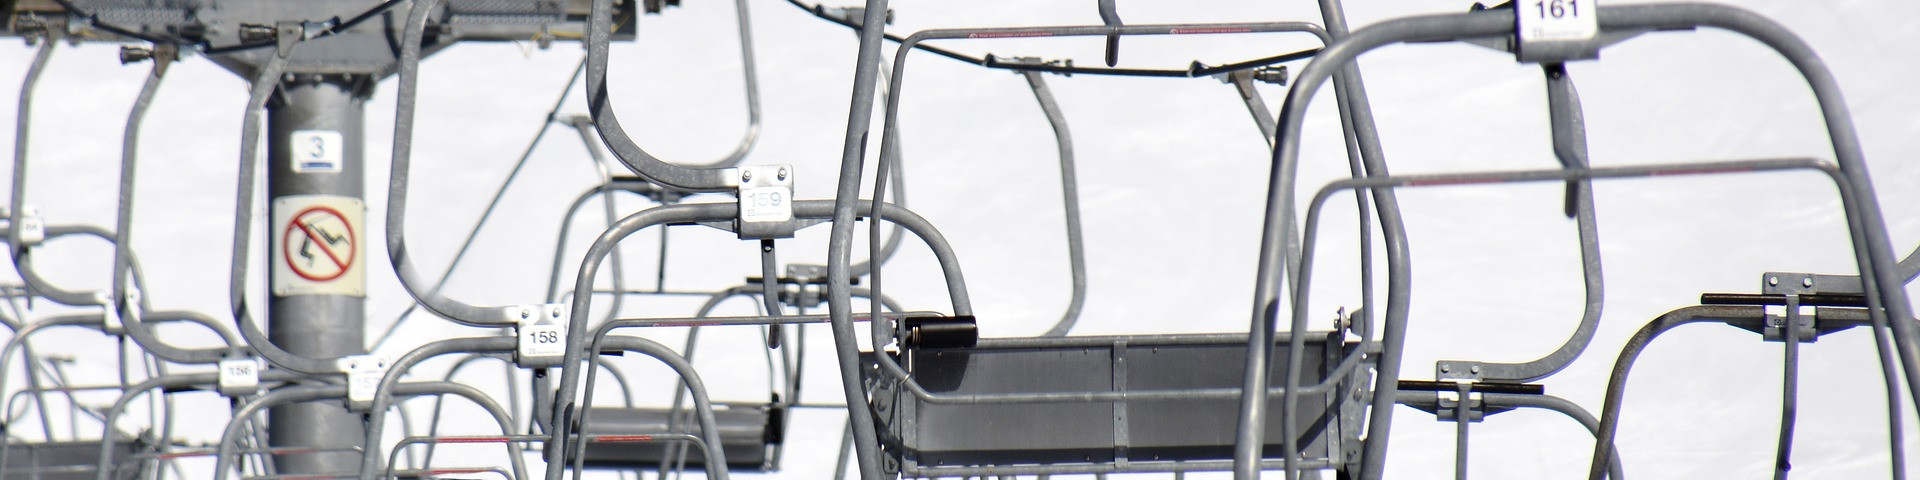 chairlift-2087108_1920